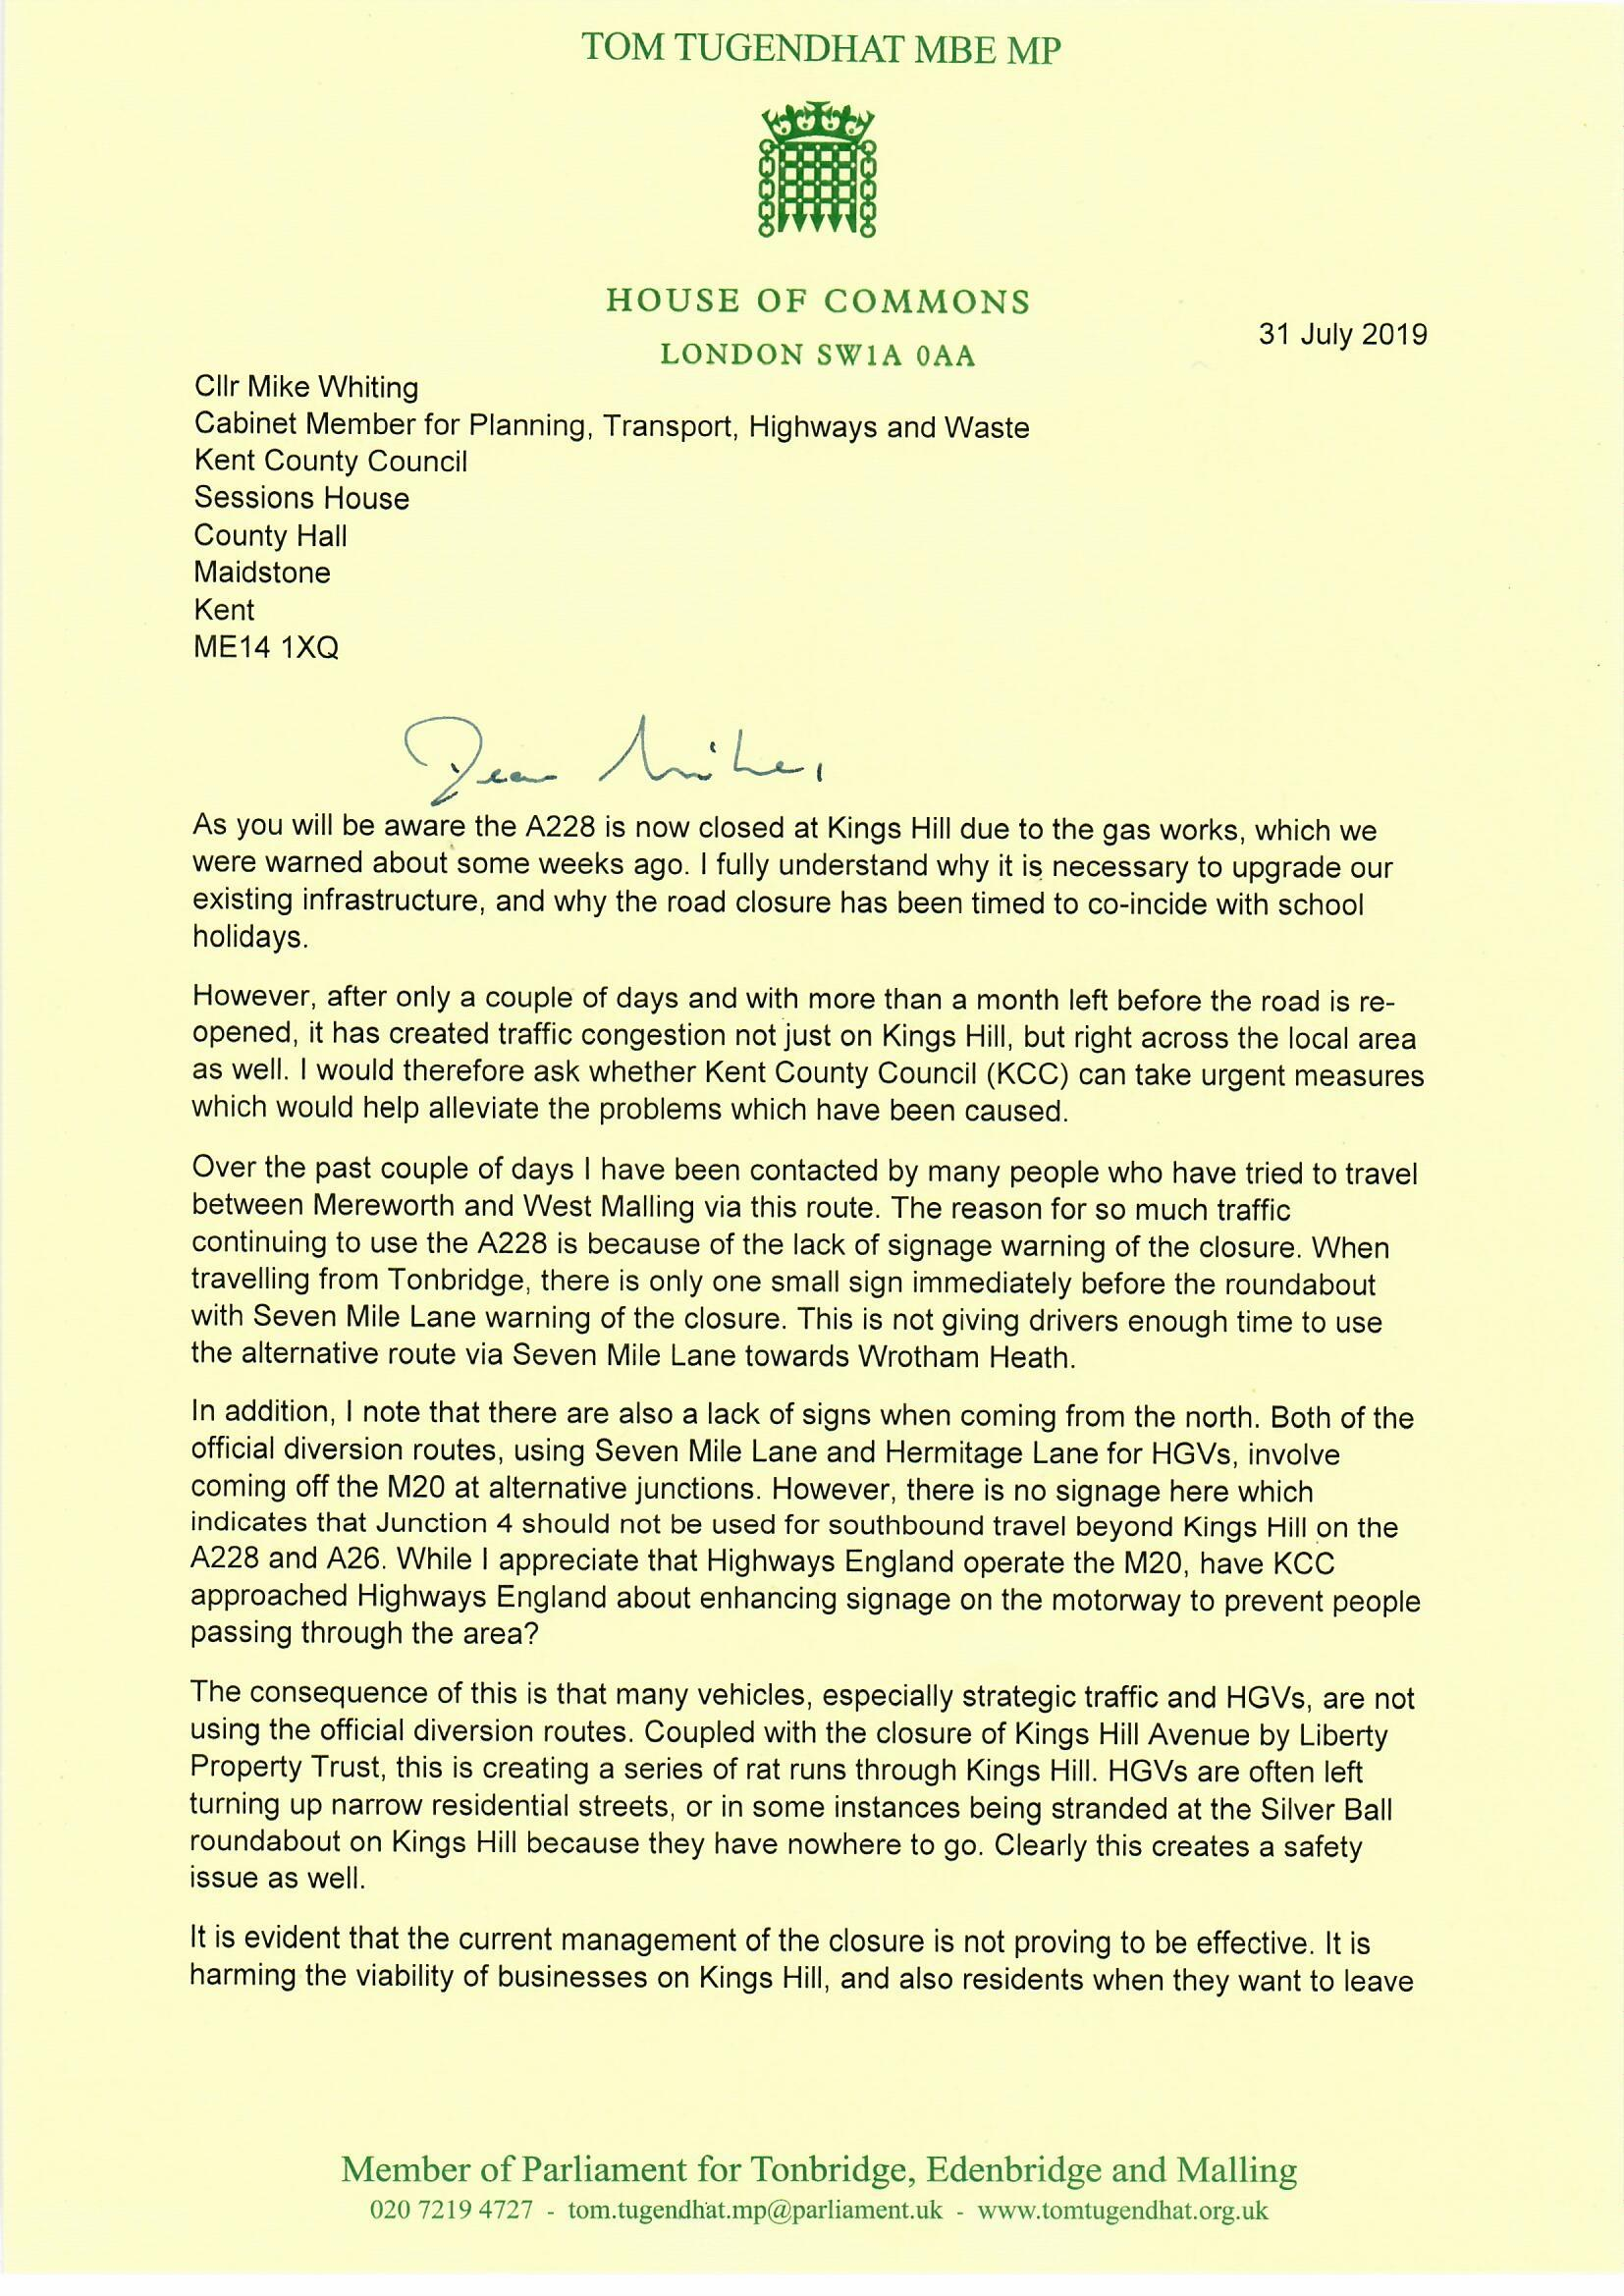 20190731 - Tom Tugendhat to Mike Whiting, A228 closure0001.jpg